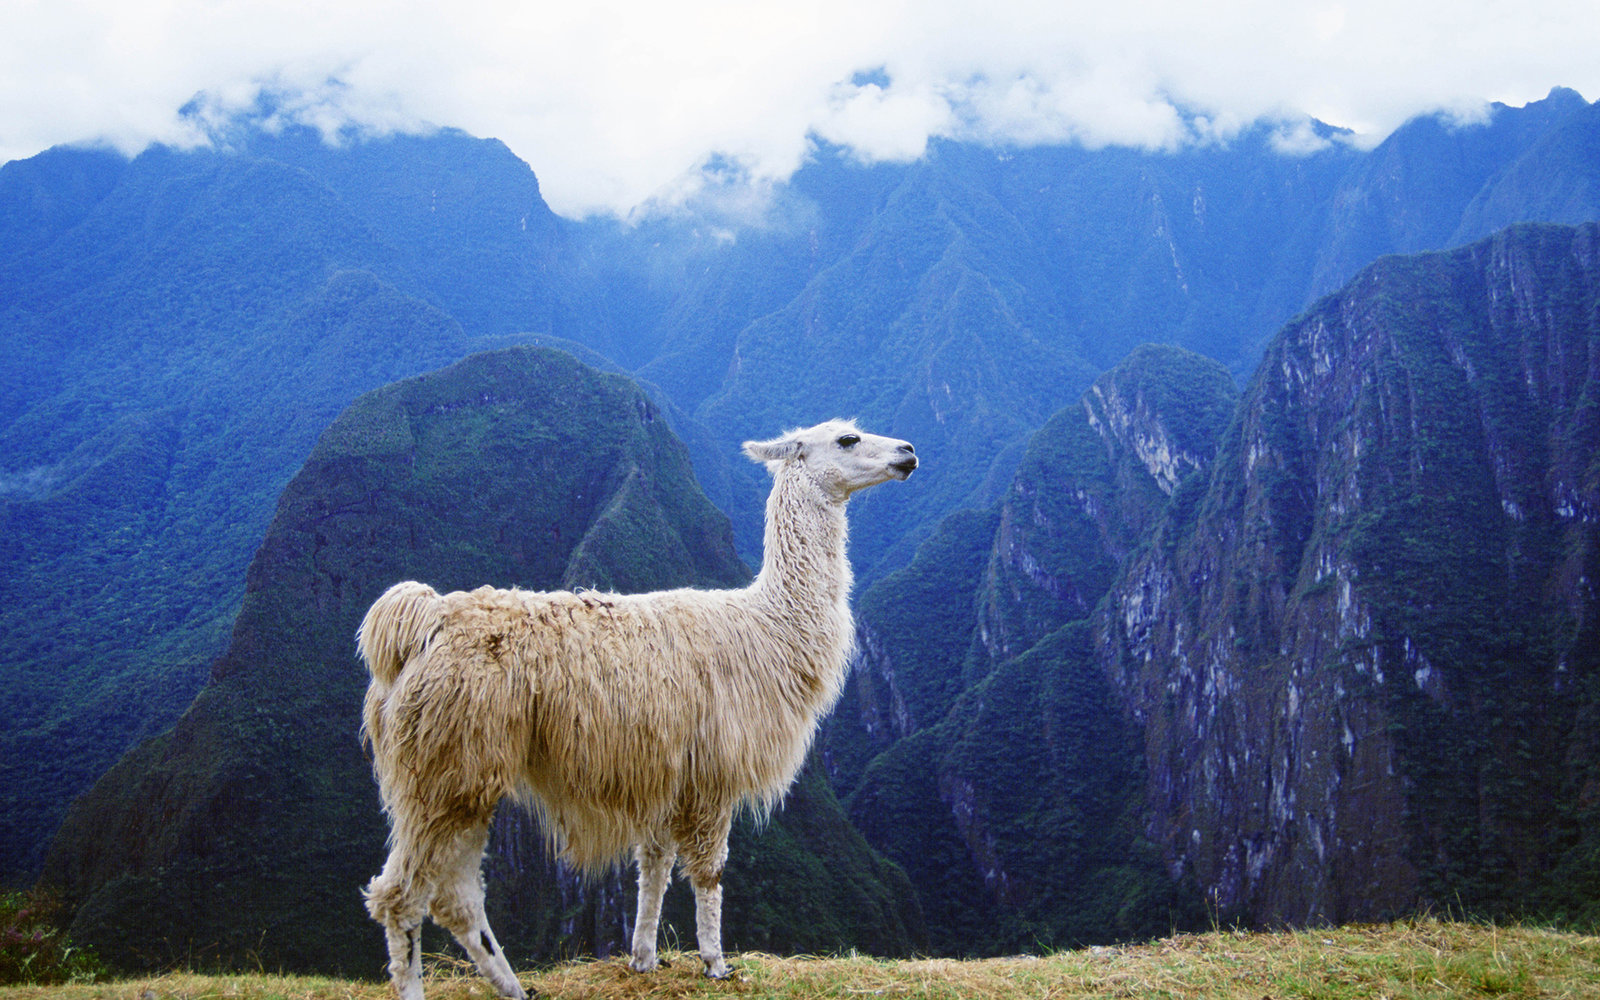 PERU - JULY 01:  Llama by Machu Picchu ruins of Inca citadel in Peru, South America  (Photo by Tim Graham/Getty Images)